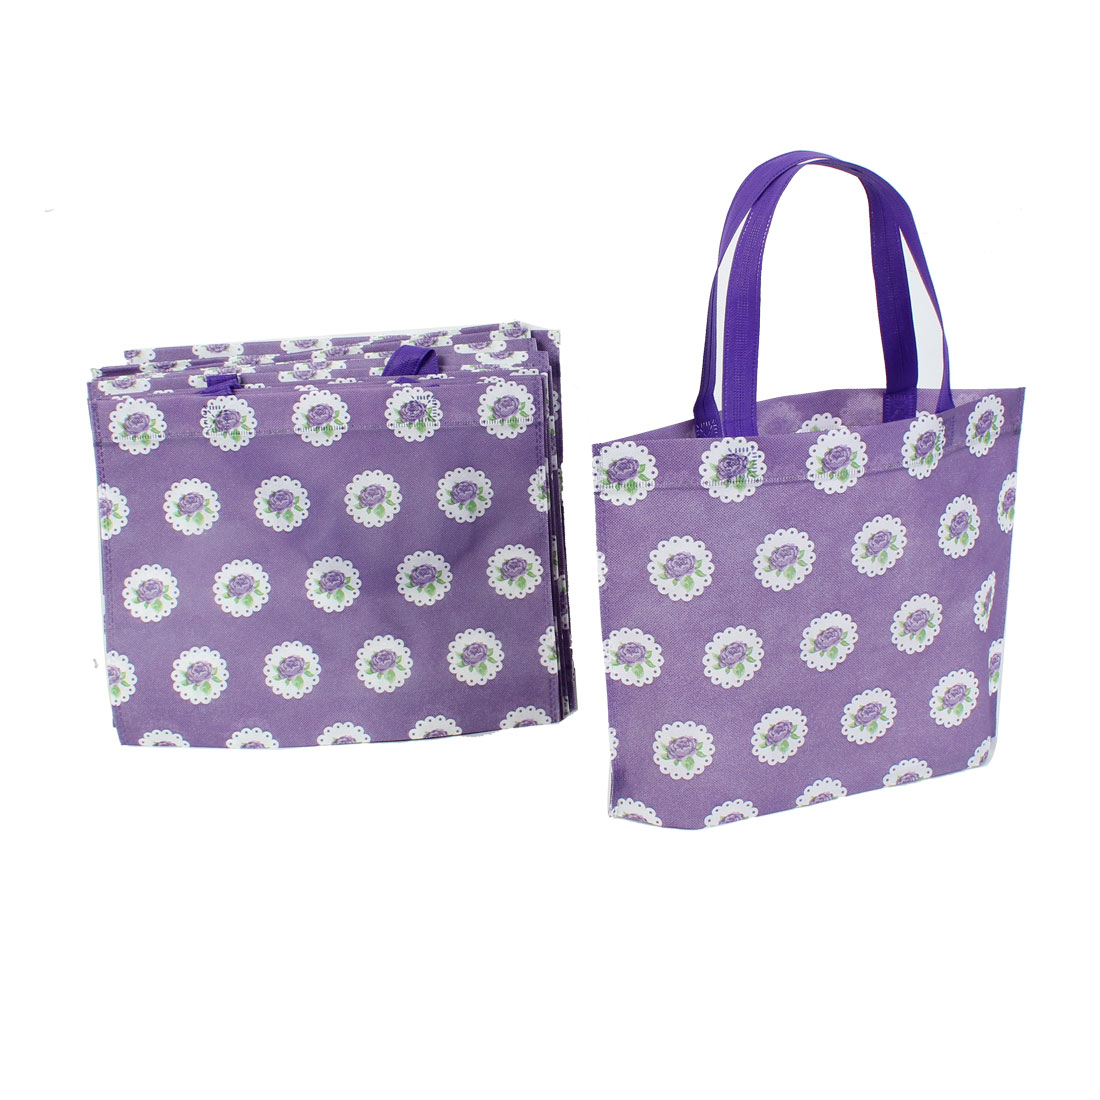 Non Woven Flower Printed Foldable Shopping Bag 35cm x 28cm Purple 20 Pcs